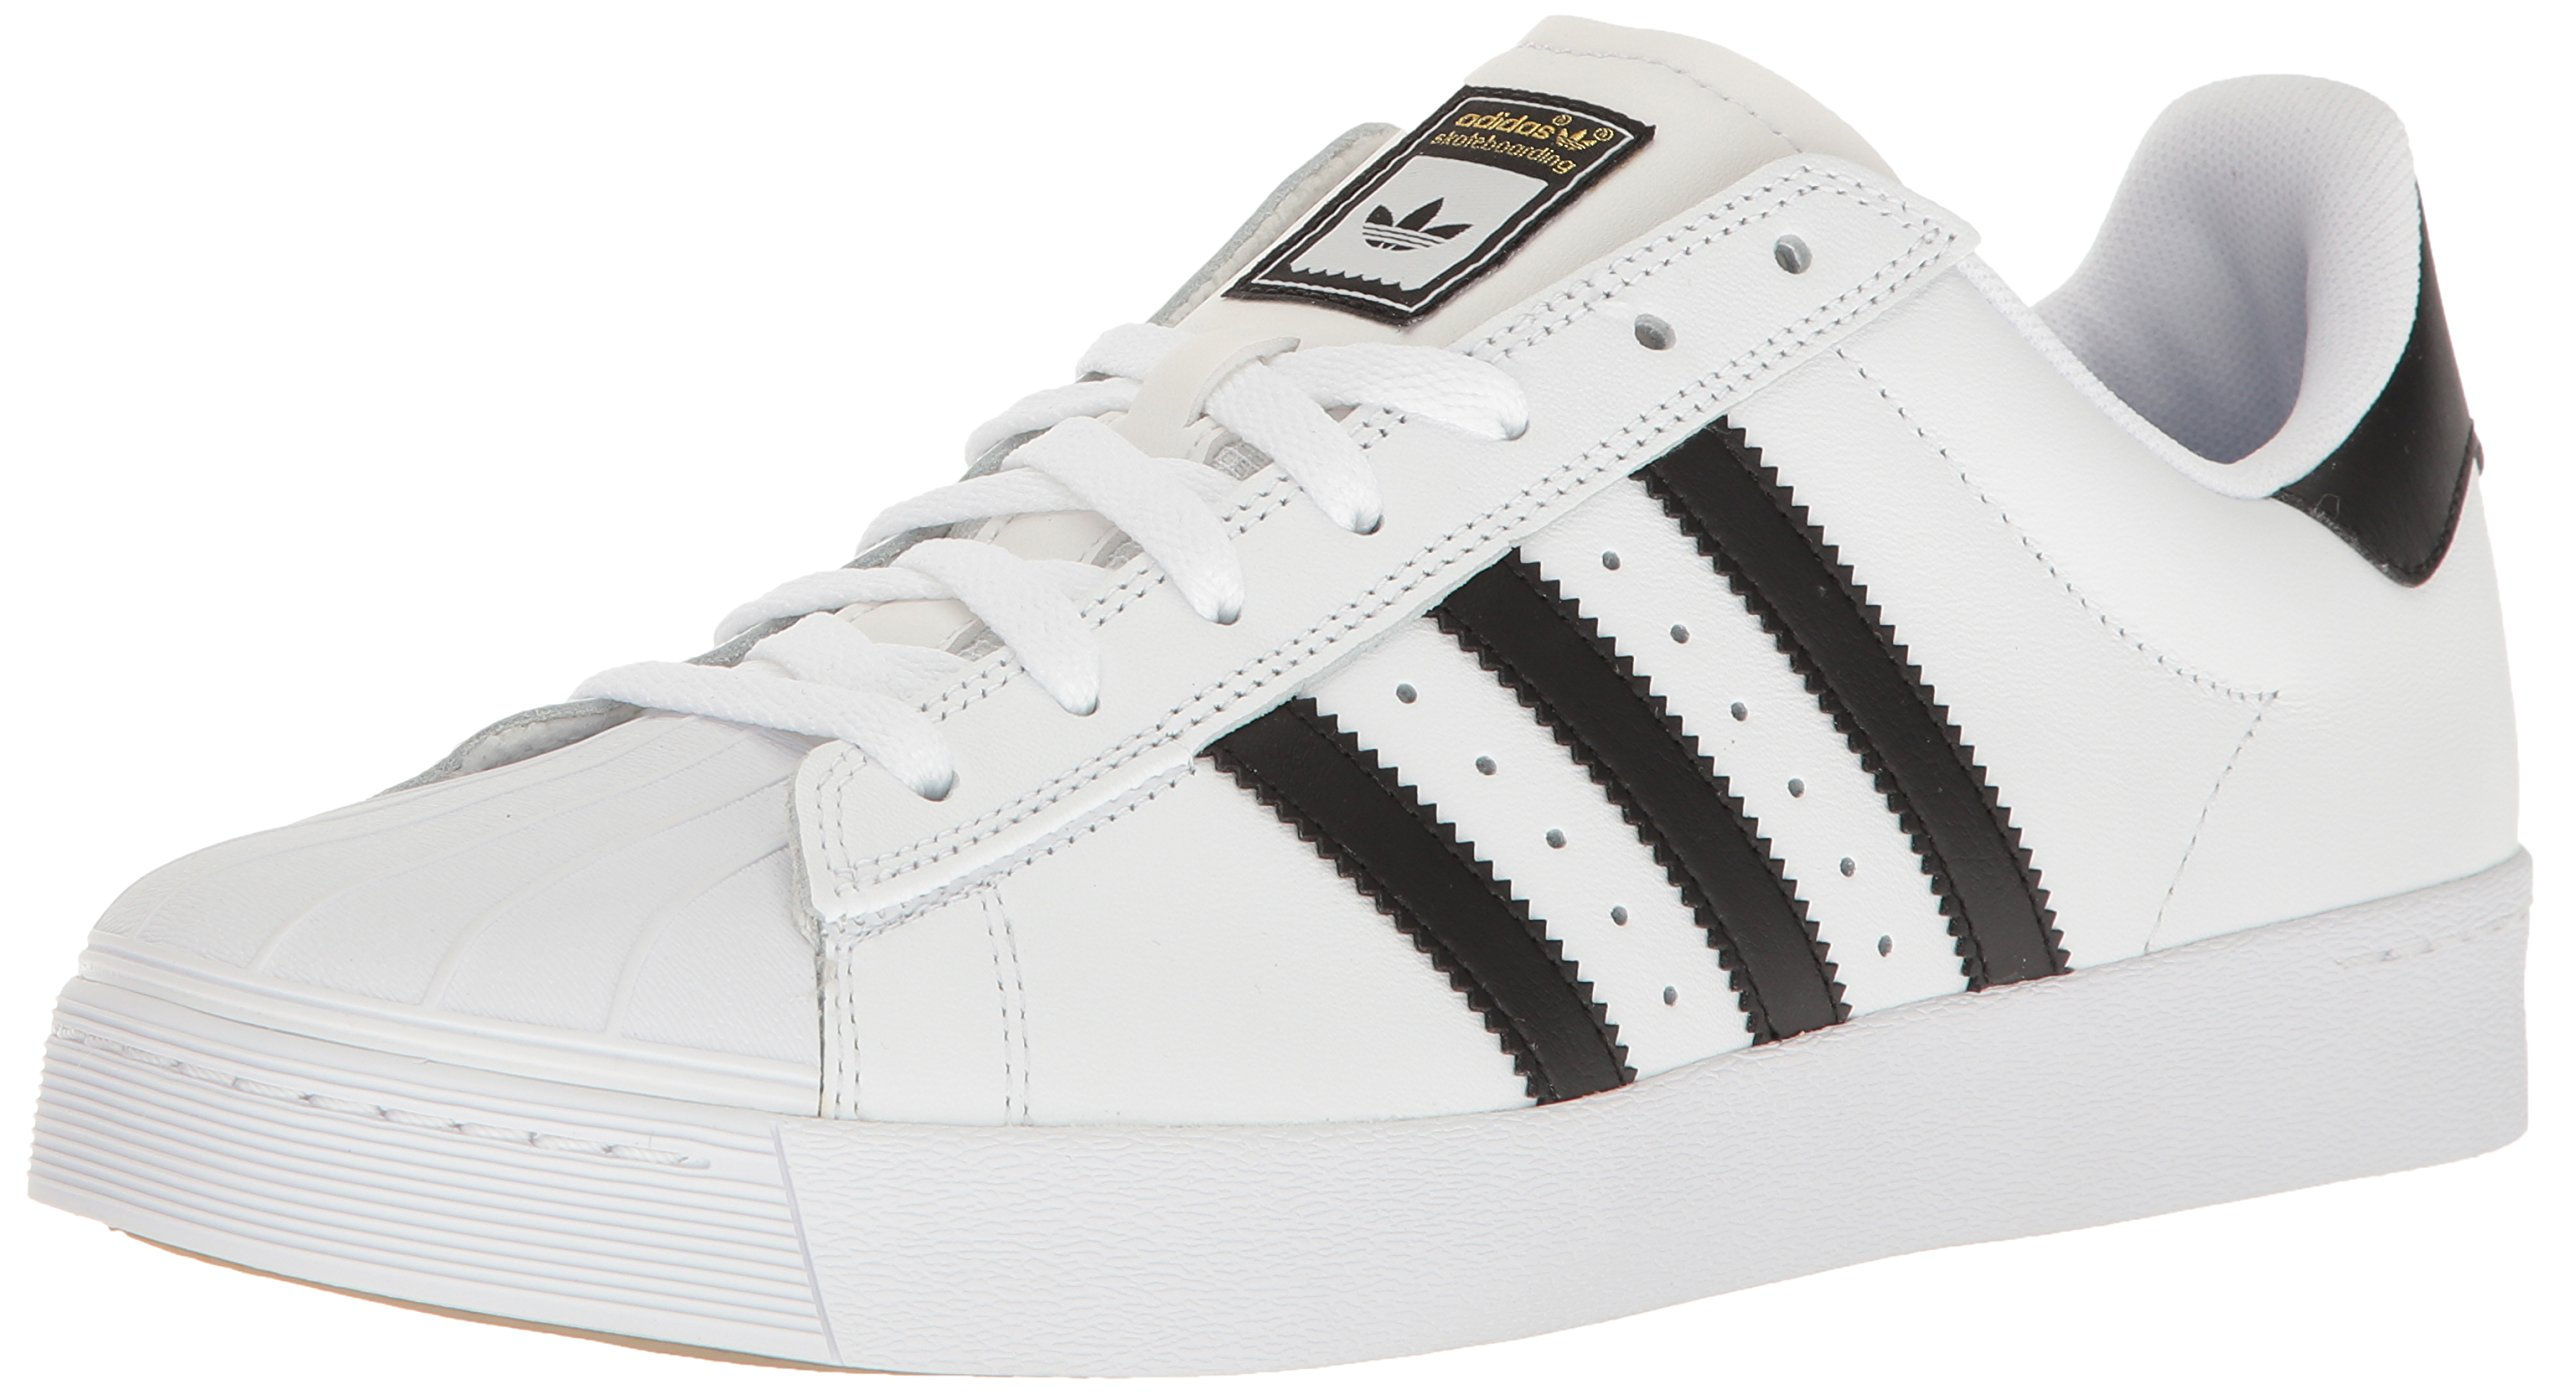 adidas Originals Men's Shoes | Superstar Vulc Adv, White/Core Black/White, (9 M US) by adidas Originals